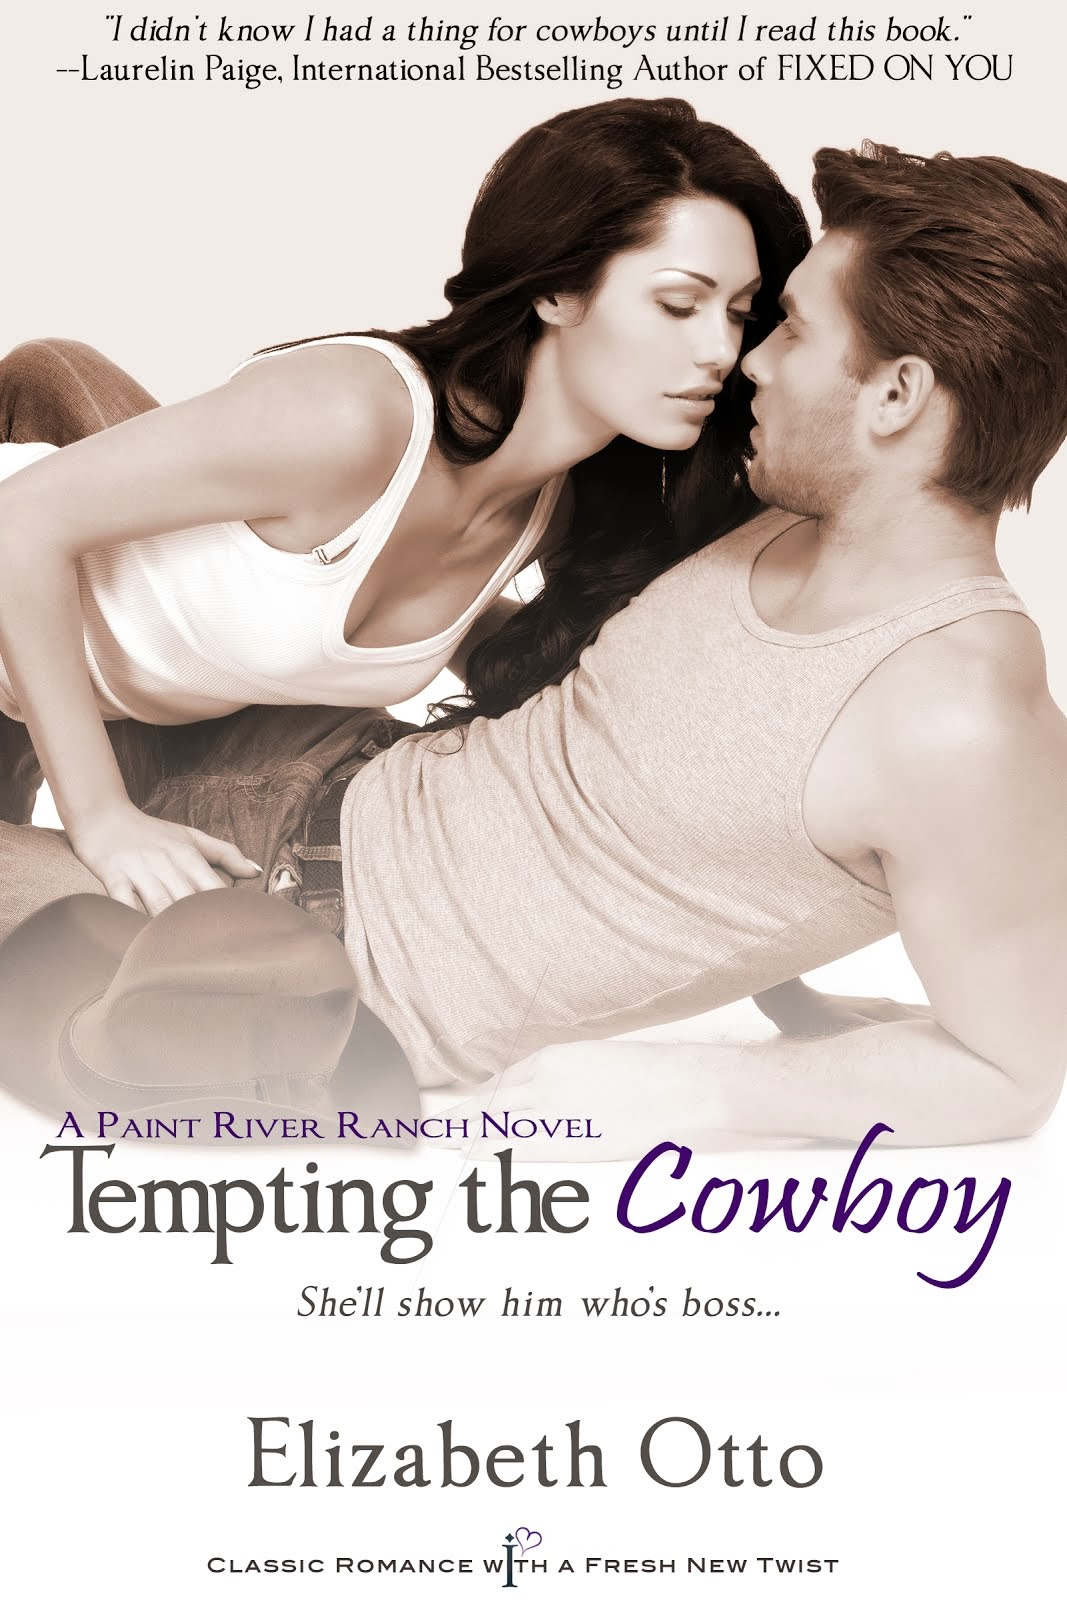 TEMPTING THE COWBOY